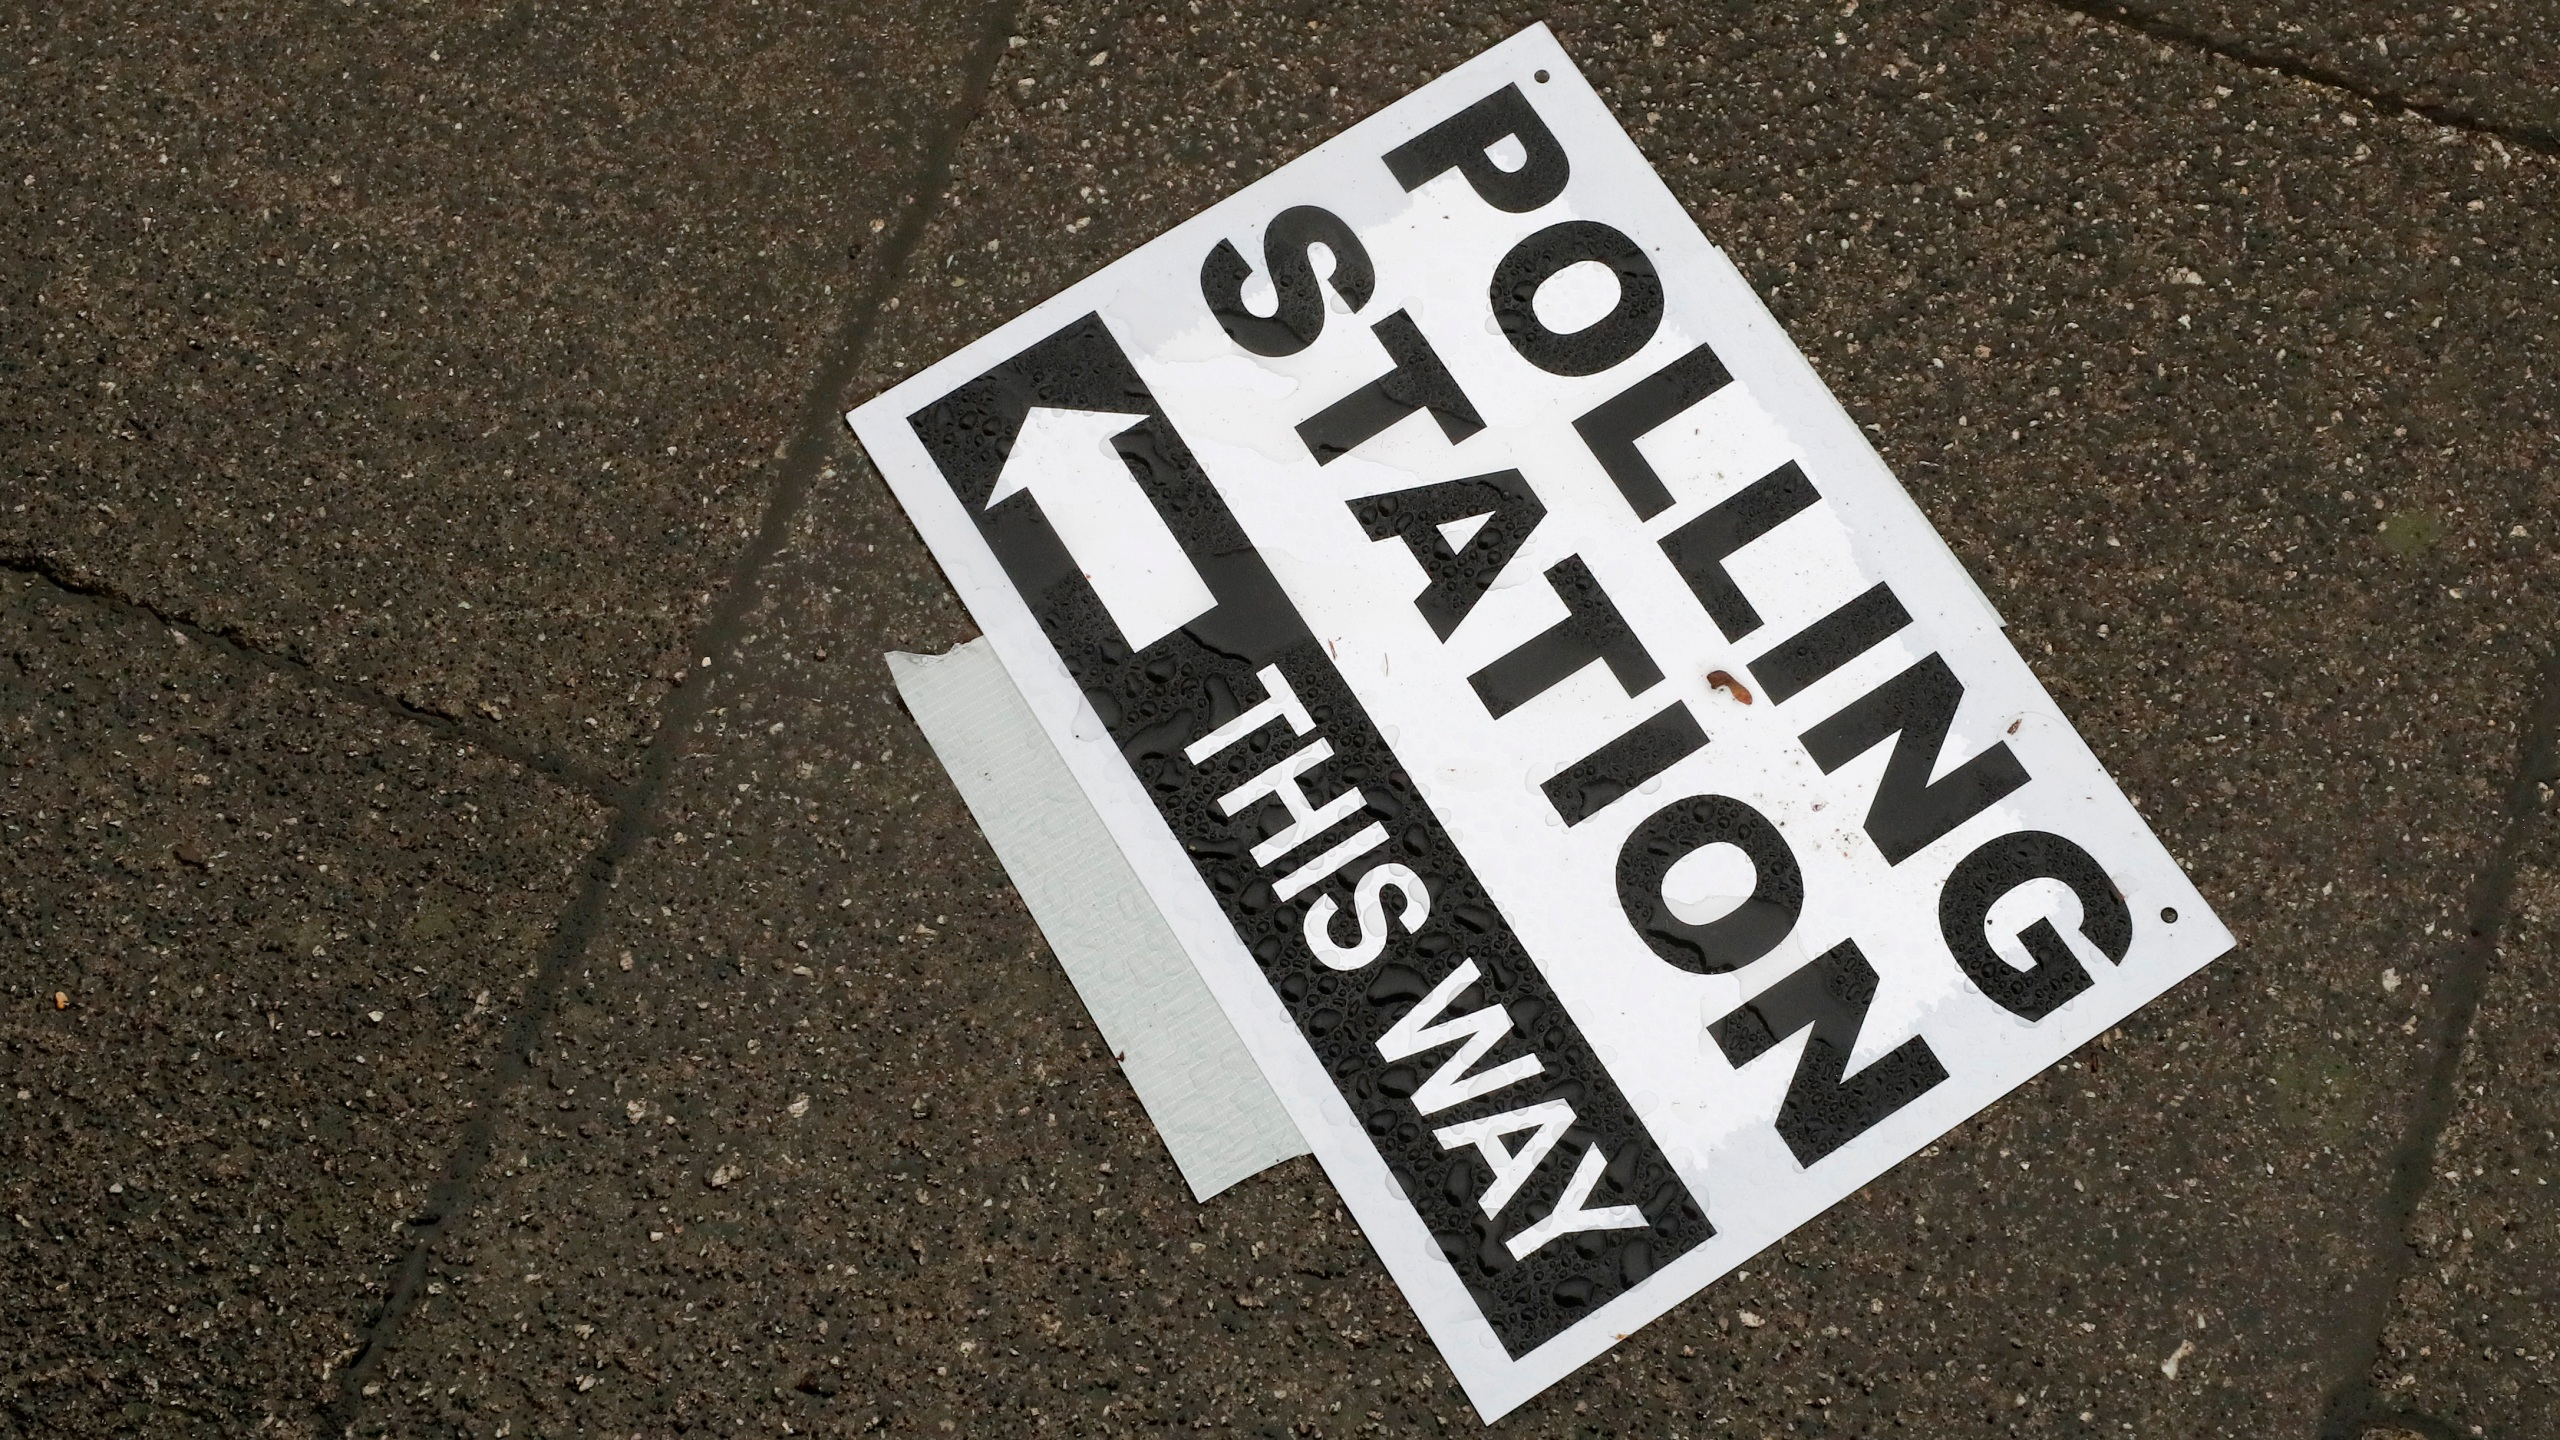 FILE - In this Thursday, Dec. 12, 2019 file photo, a polling station signpost lies on the pavement in England. (AP Photo/Frank Augstein, File)